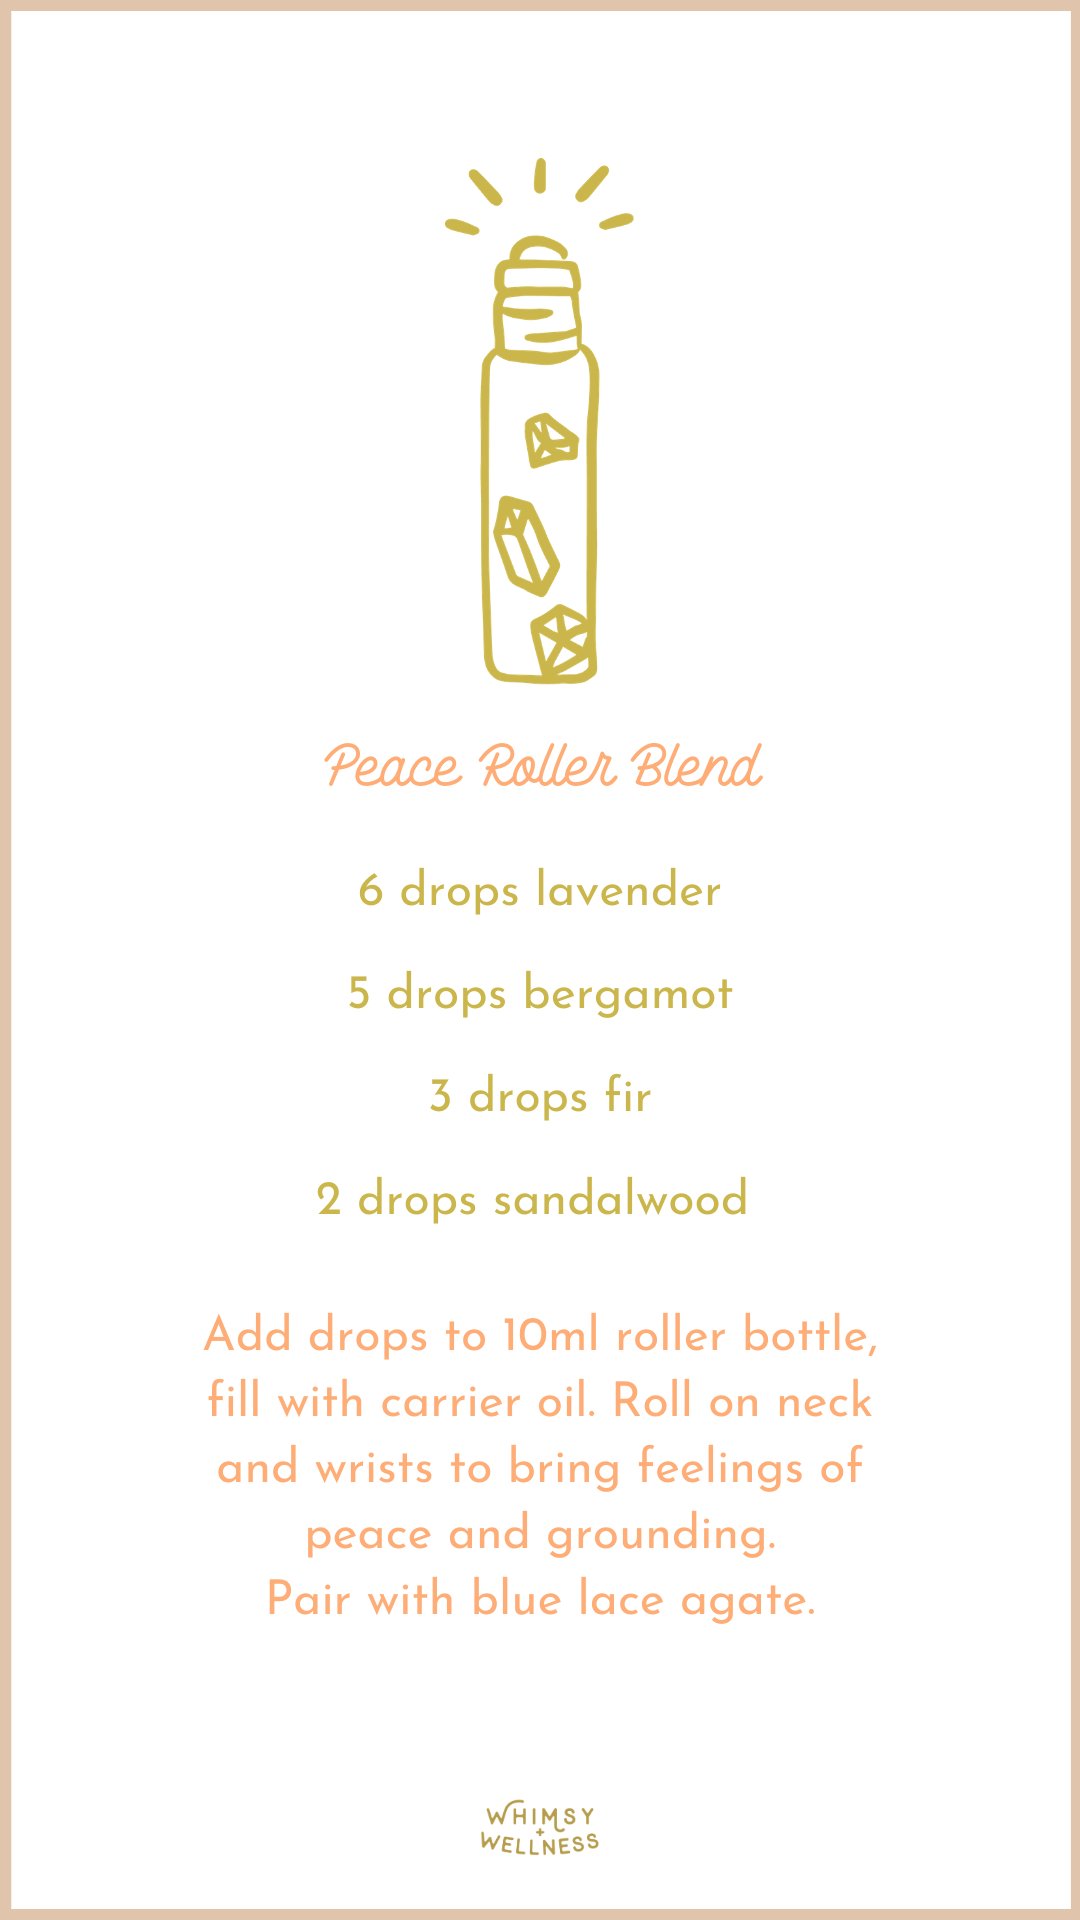 peace essential oils roller bottle blend to help support a friend through miscarriage